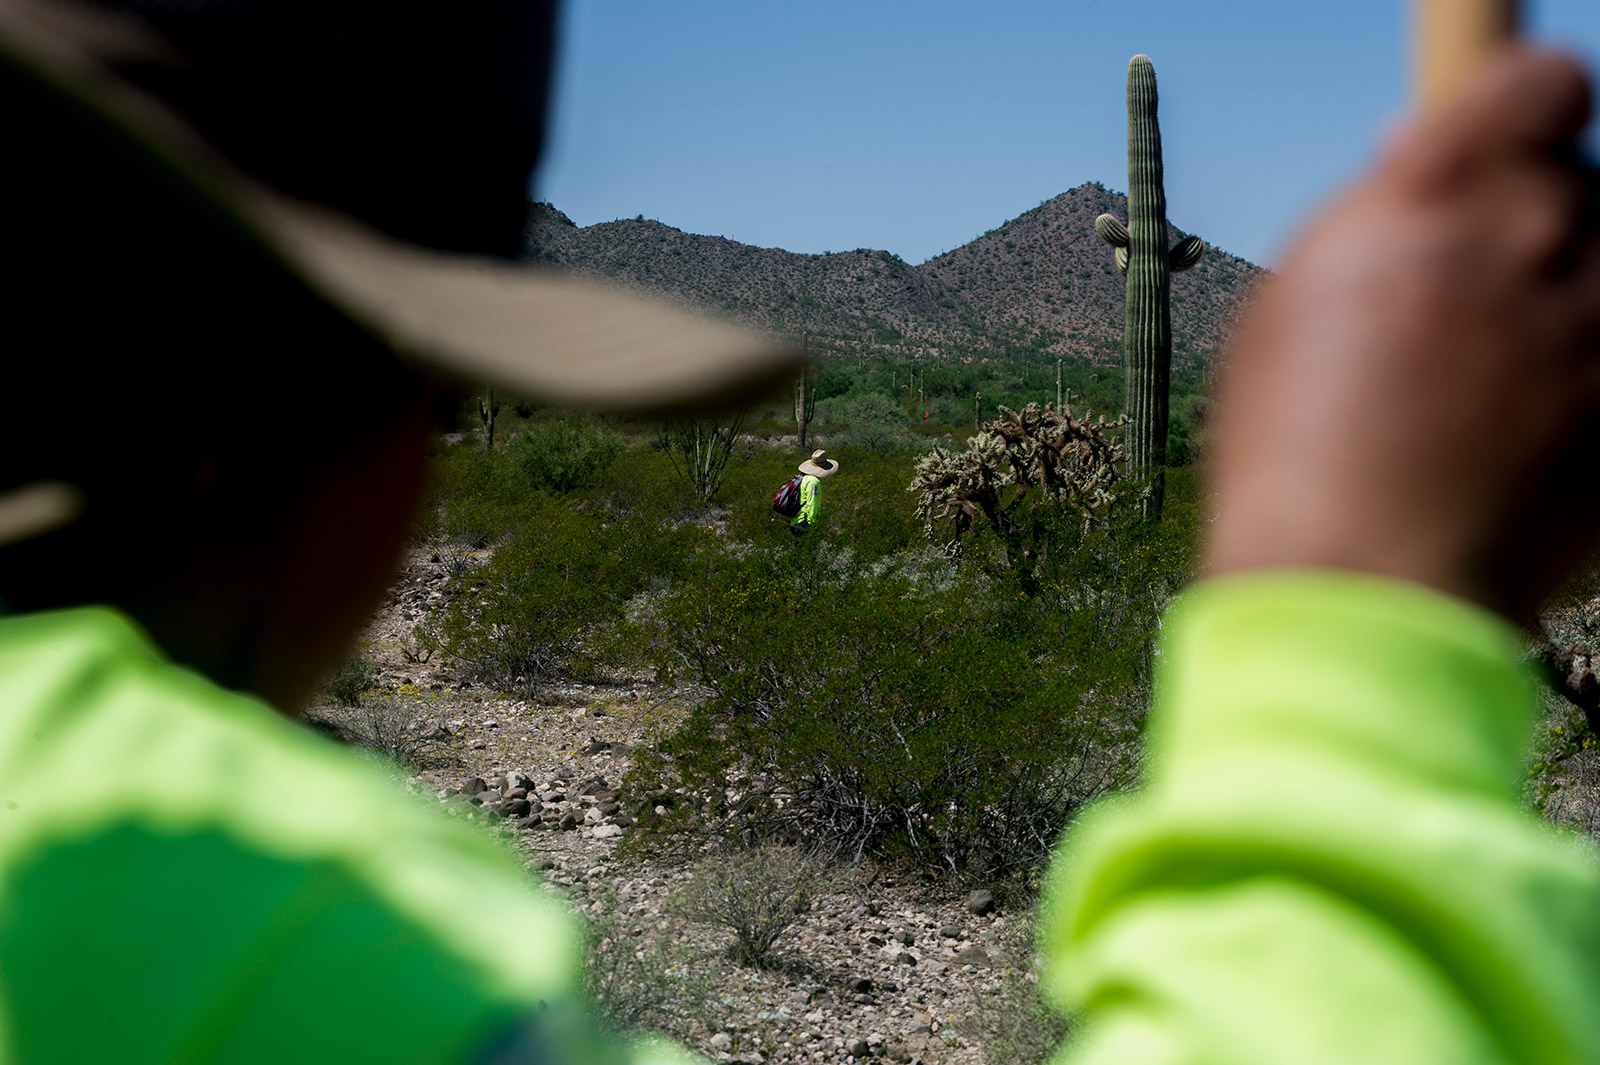 Ely Ortiz rests for a moment as one of his nearly two dozen volunteers walks nearby in the desert of Organ Pipe Cactus National Monument along the U.S.-Mexico border in Arizona on Aug. 26, 2017. <em>(Brandon Quester/inewsource)</em>